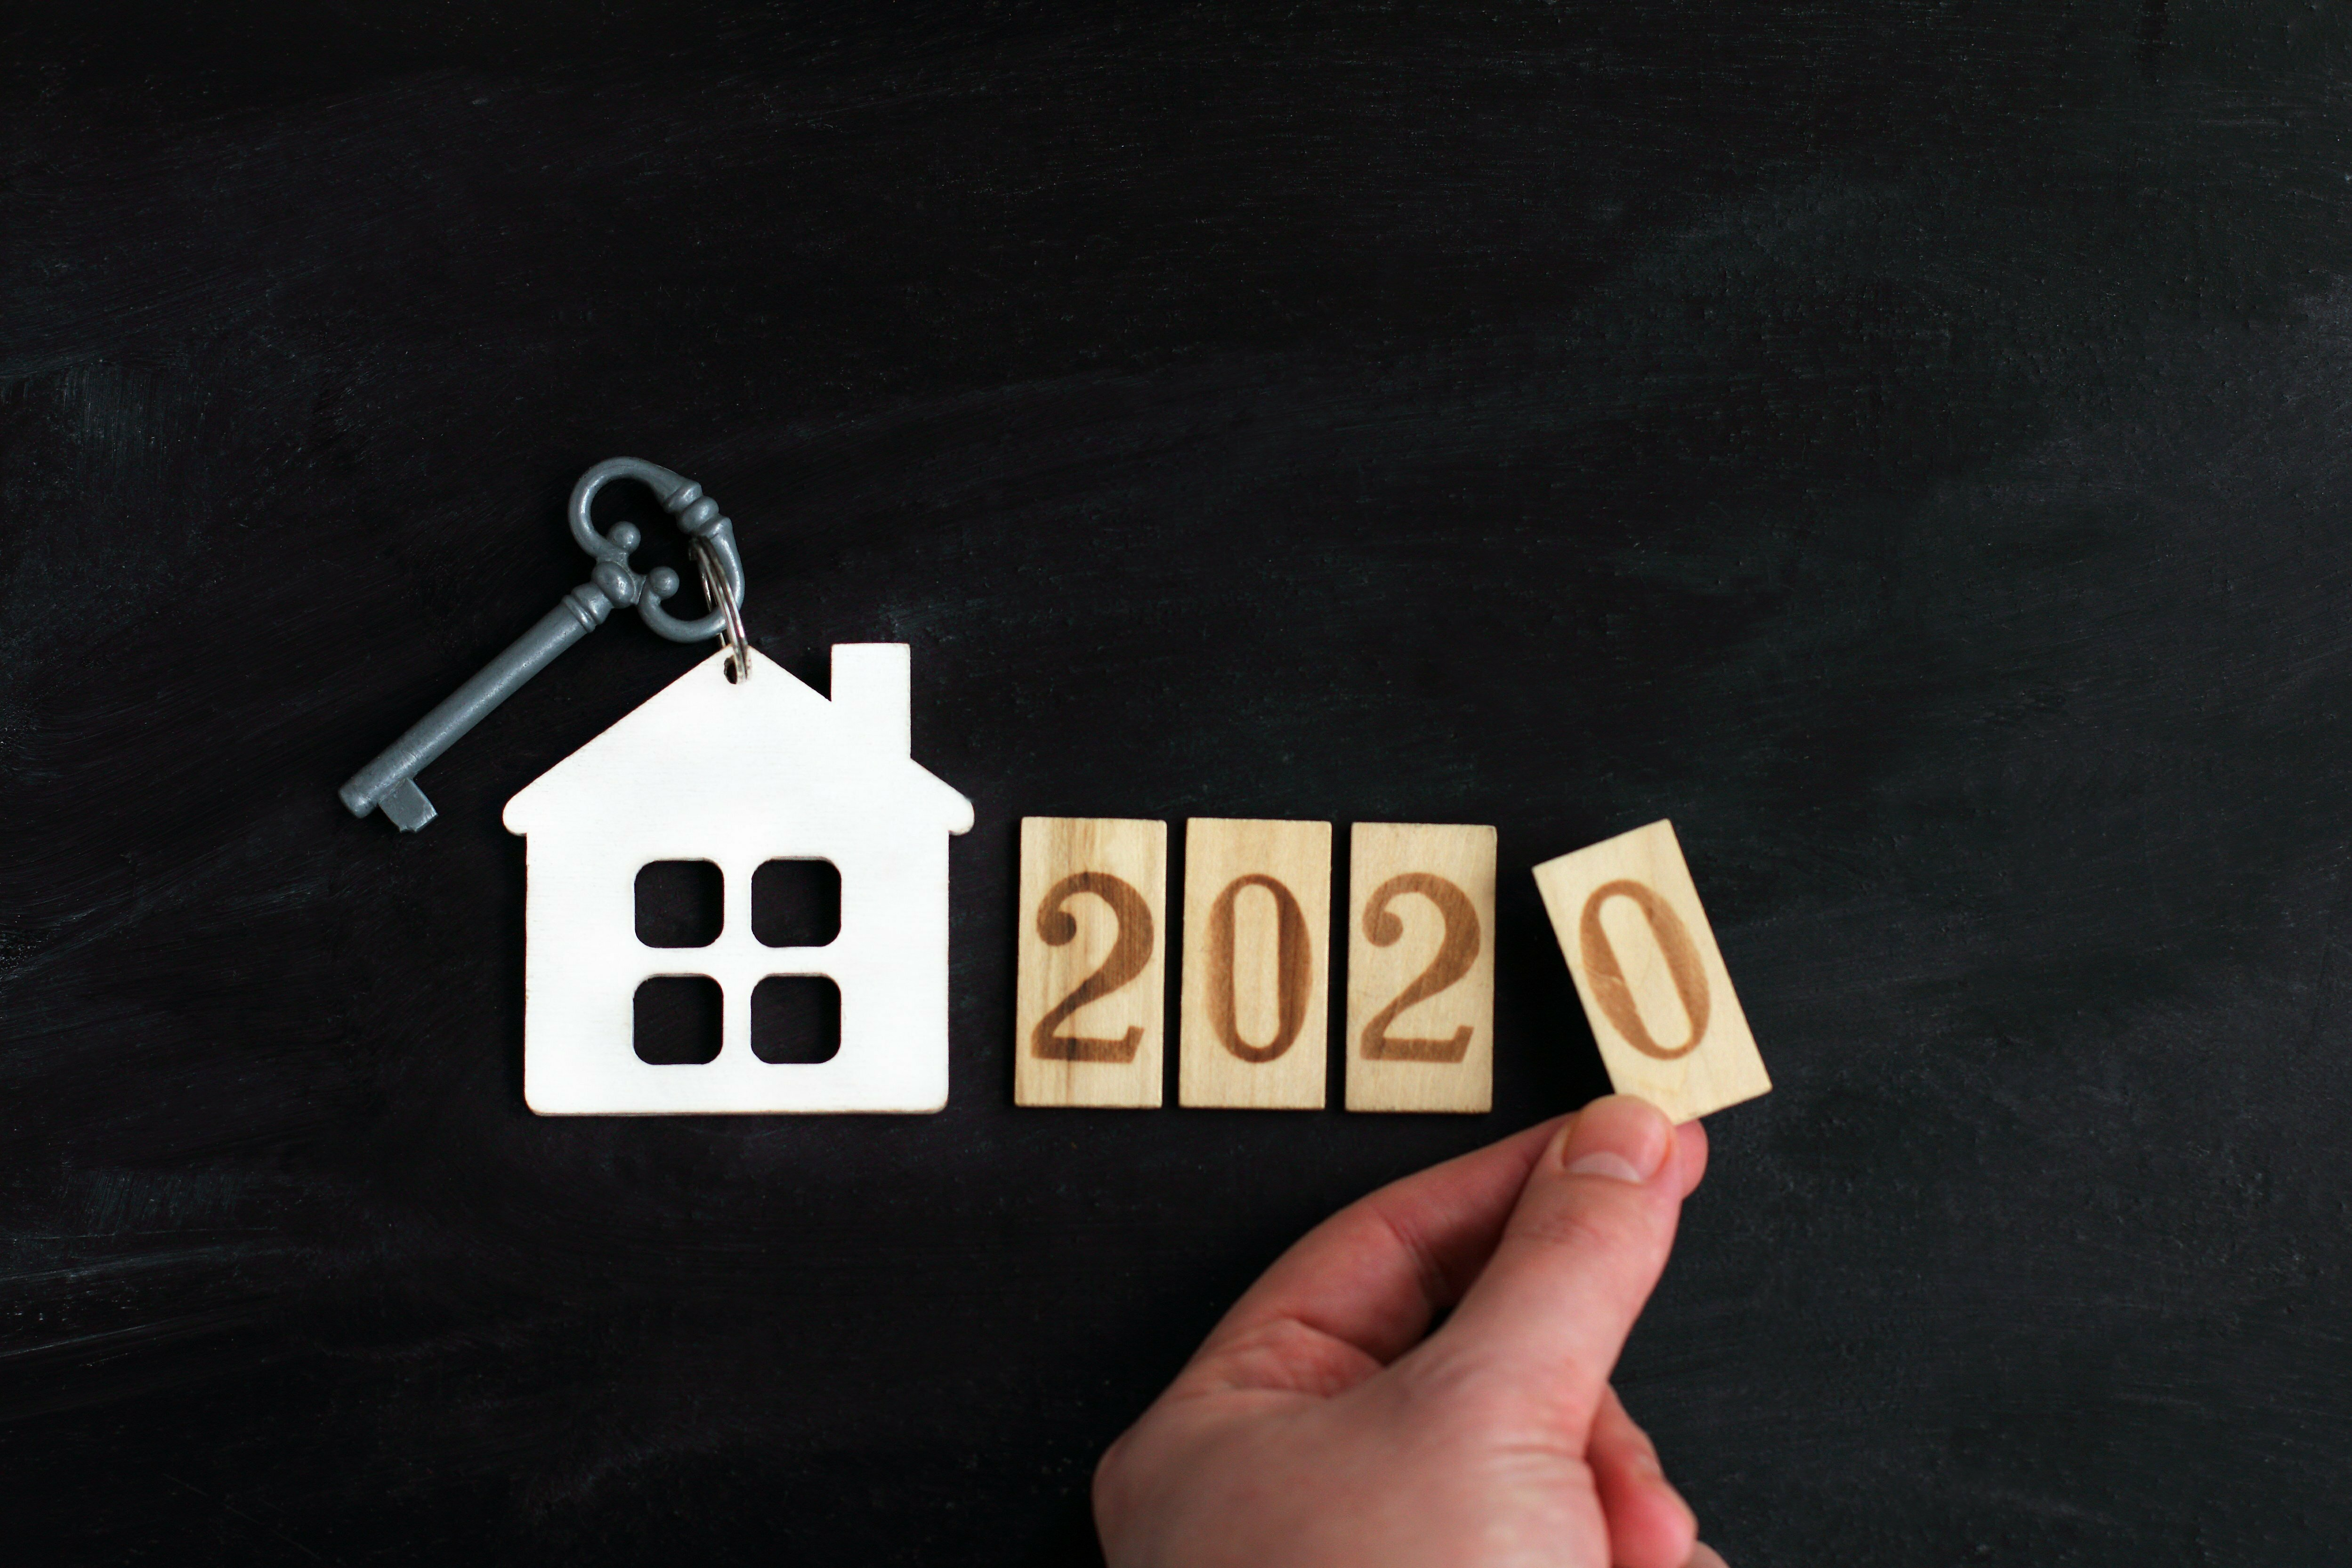 model of a house with a key next to the number 2020 and a hand. build individual housing in the new year